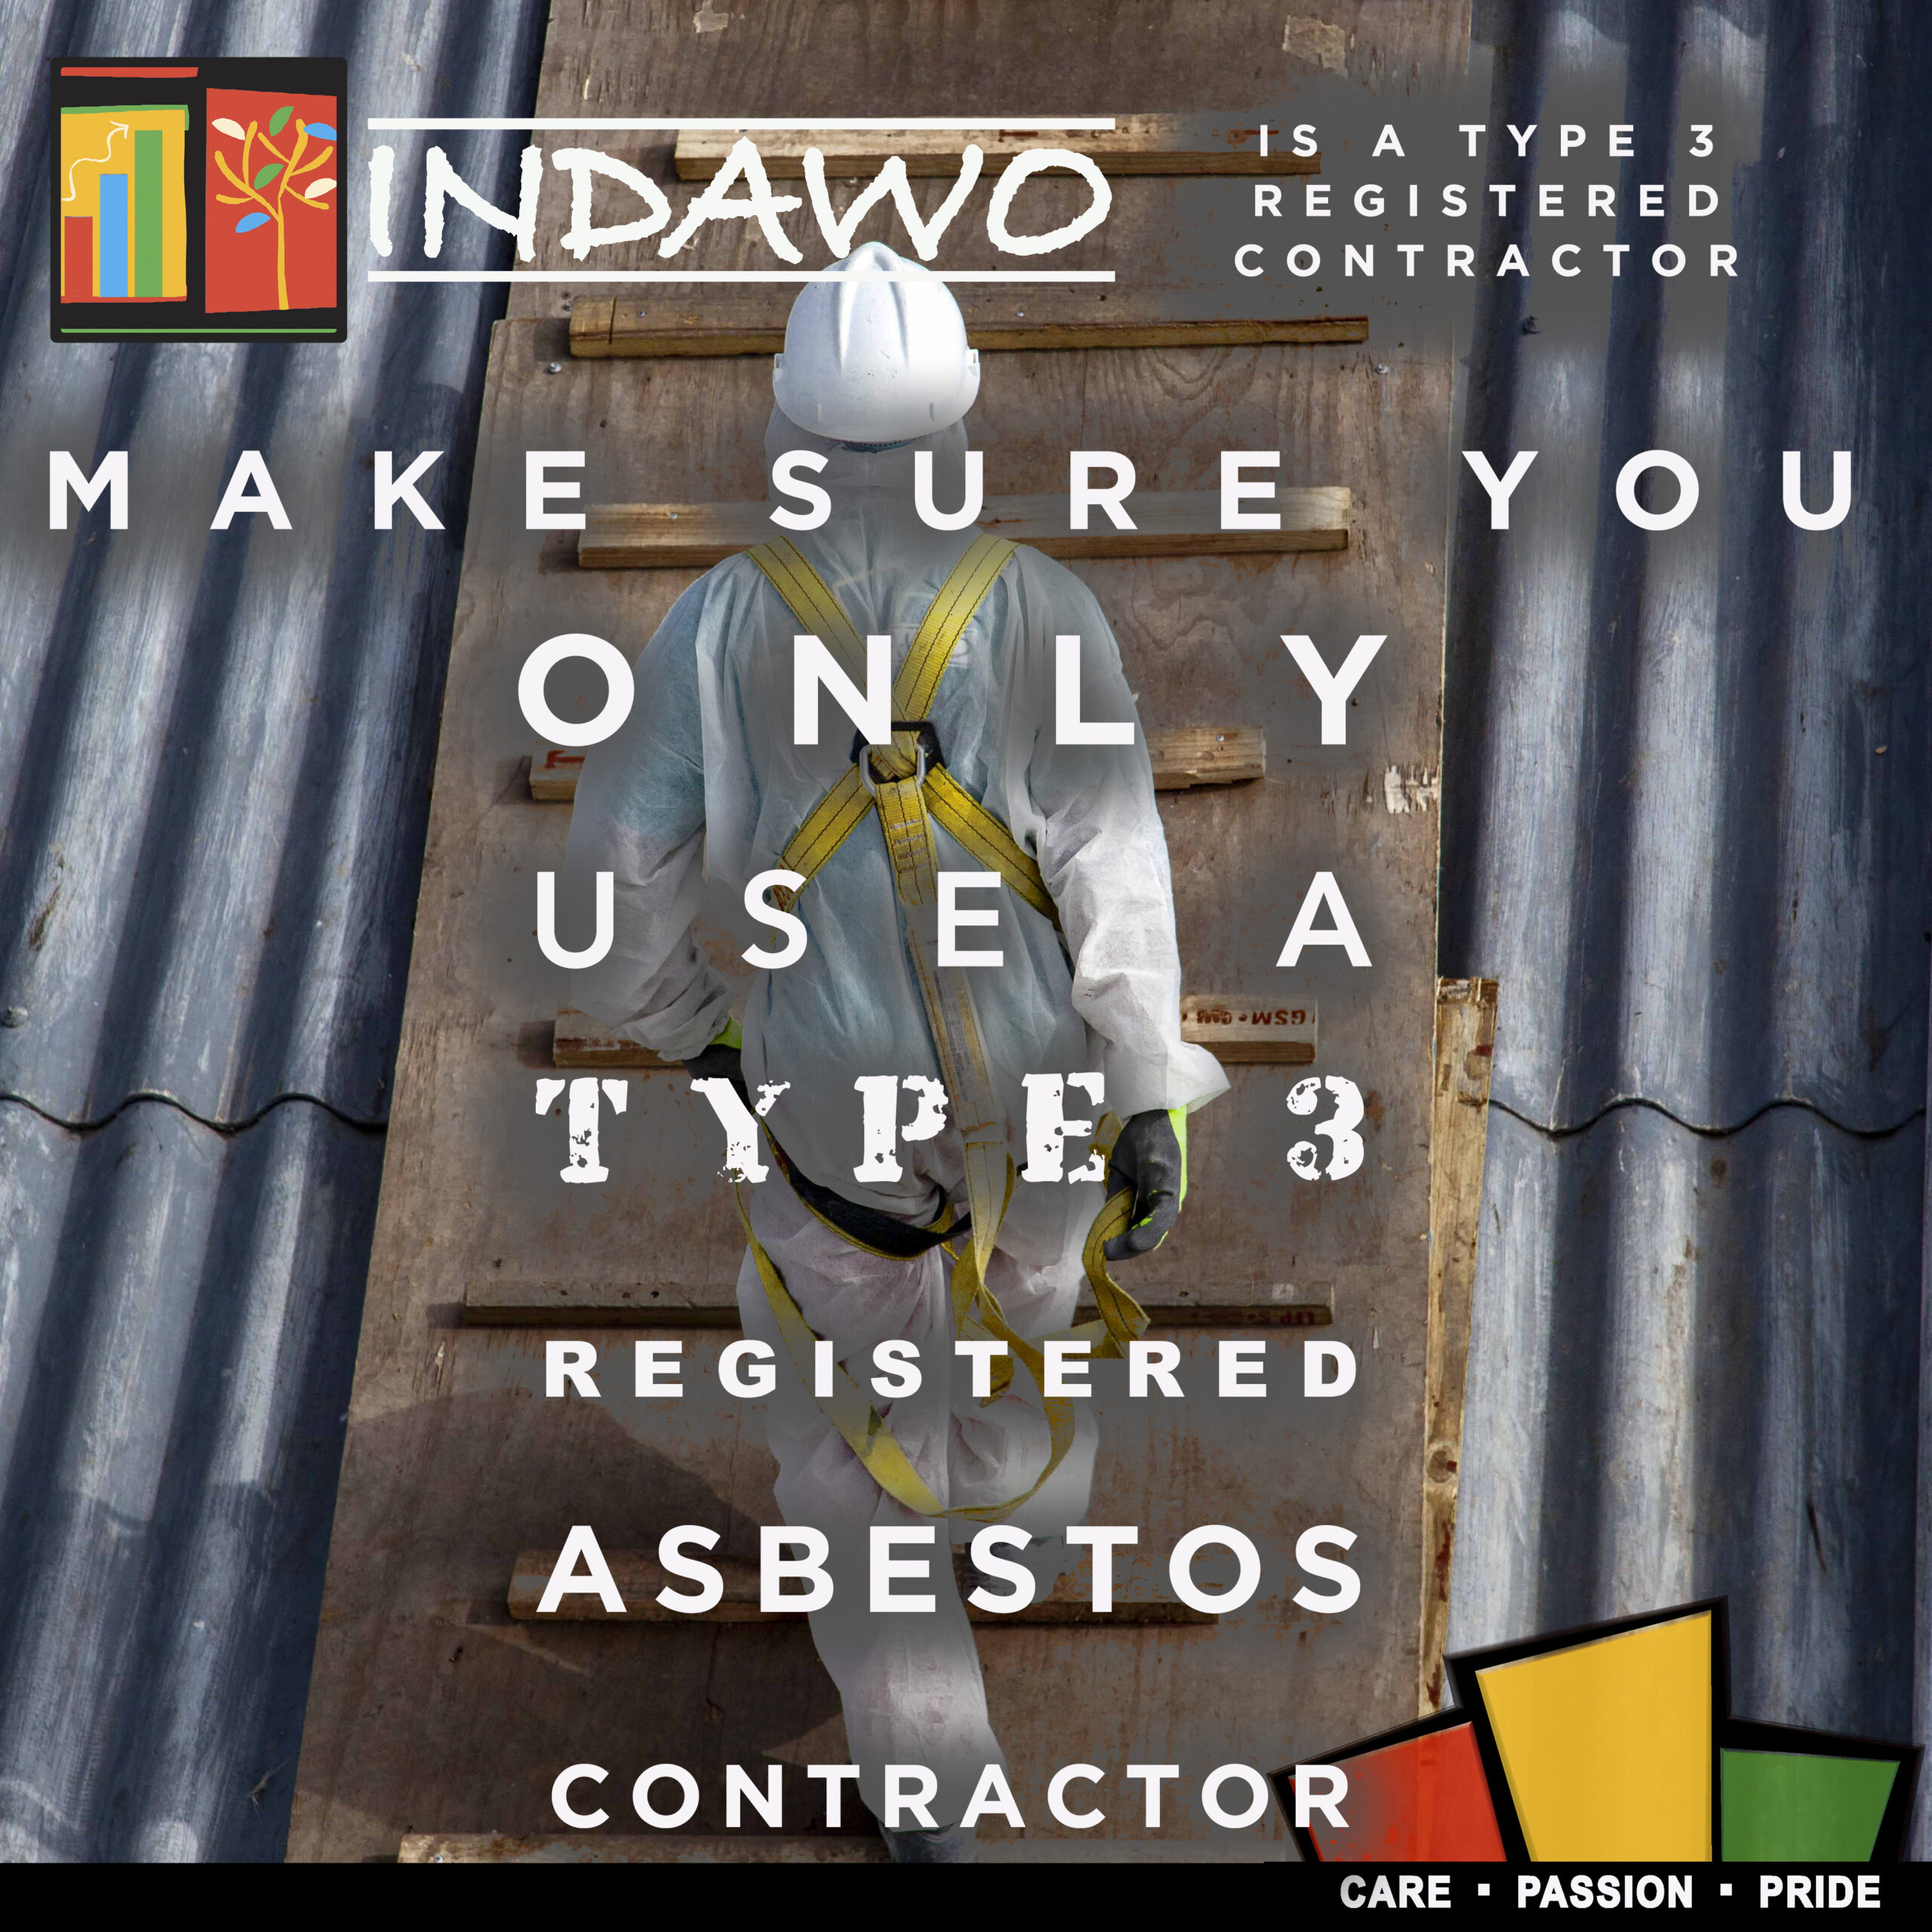 TYPE 3 registered asbestos contractor Cape Town